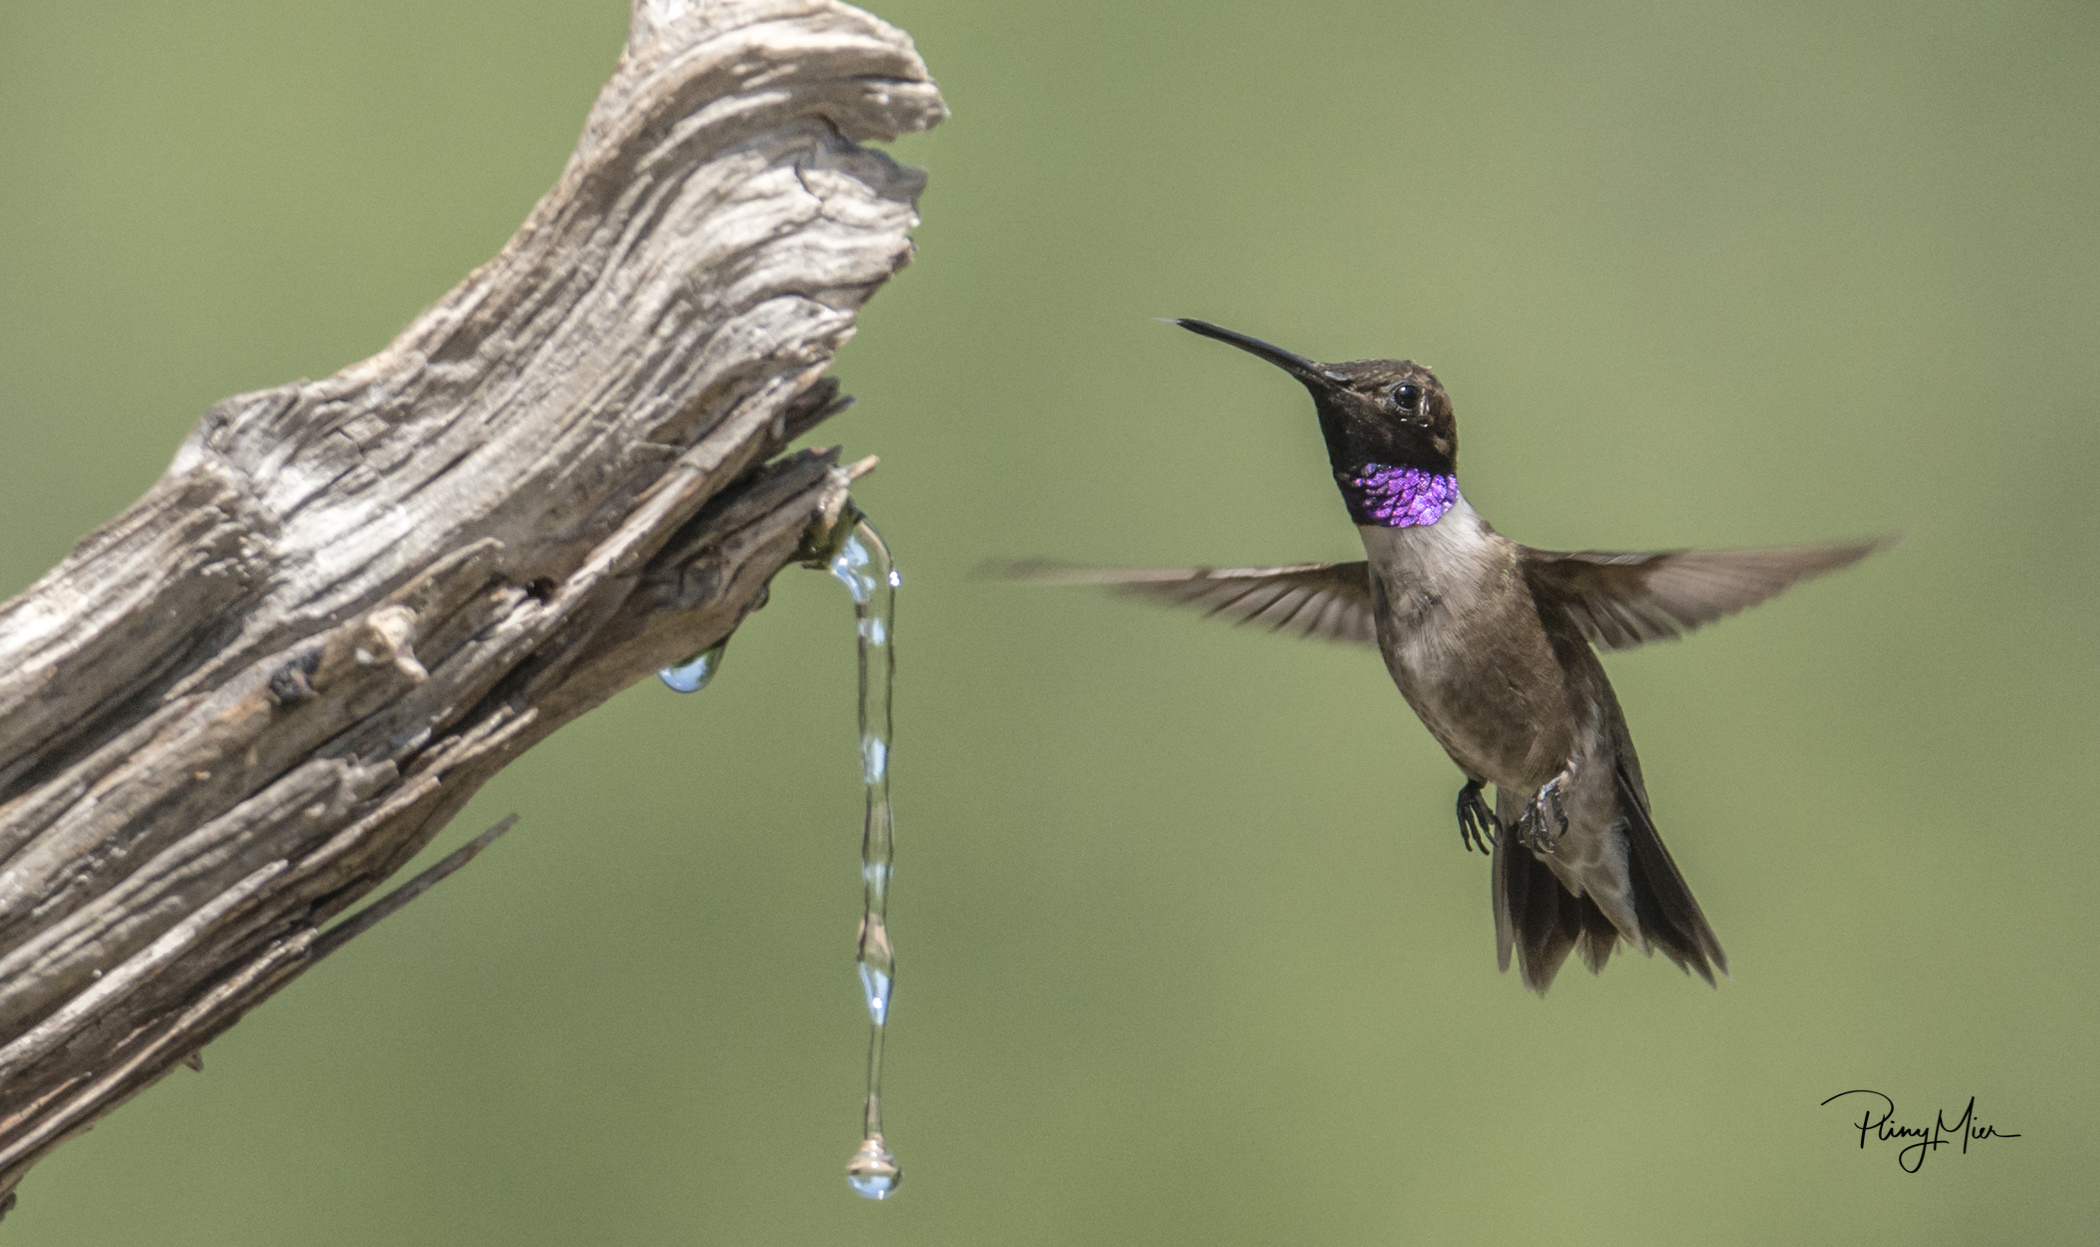 Black-chinned Hummer LL